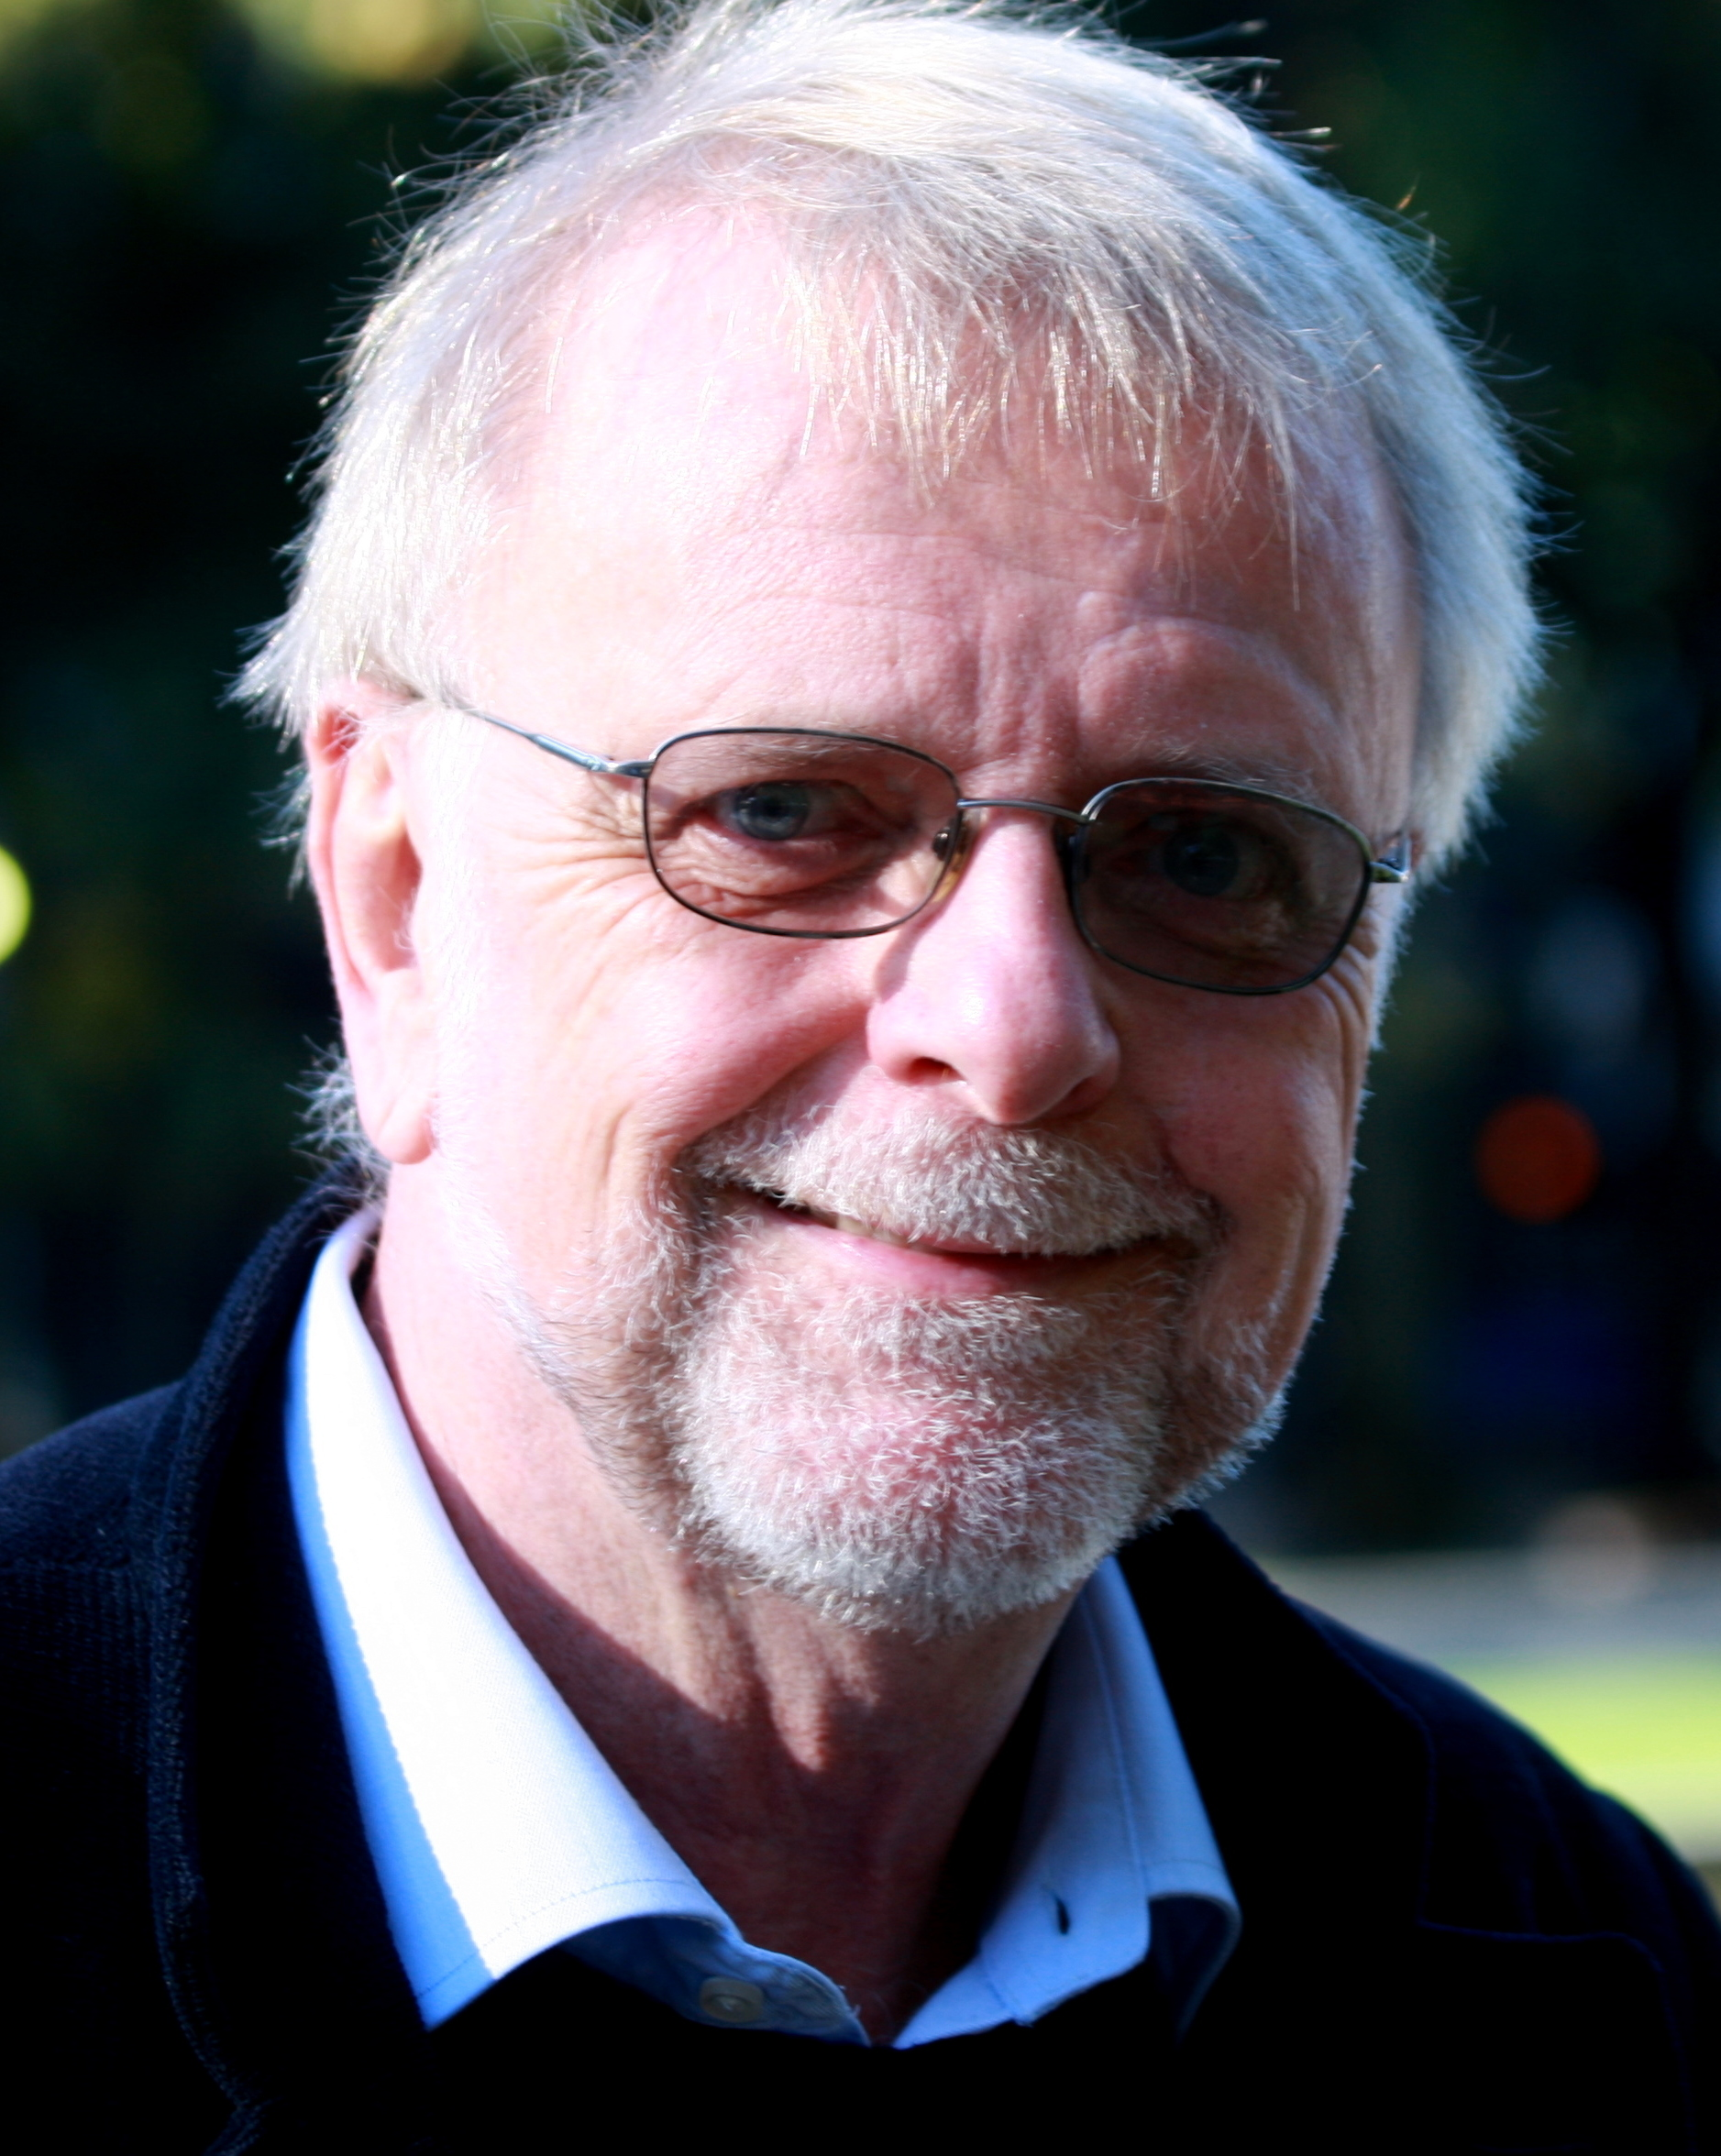 Hagerup in 2010